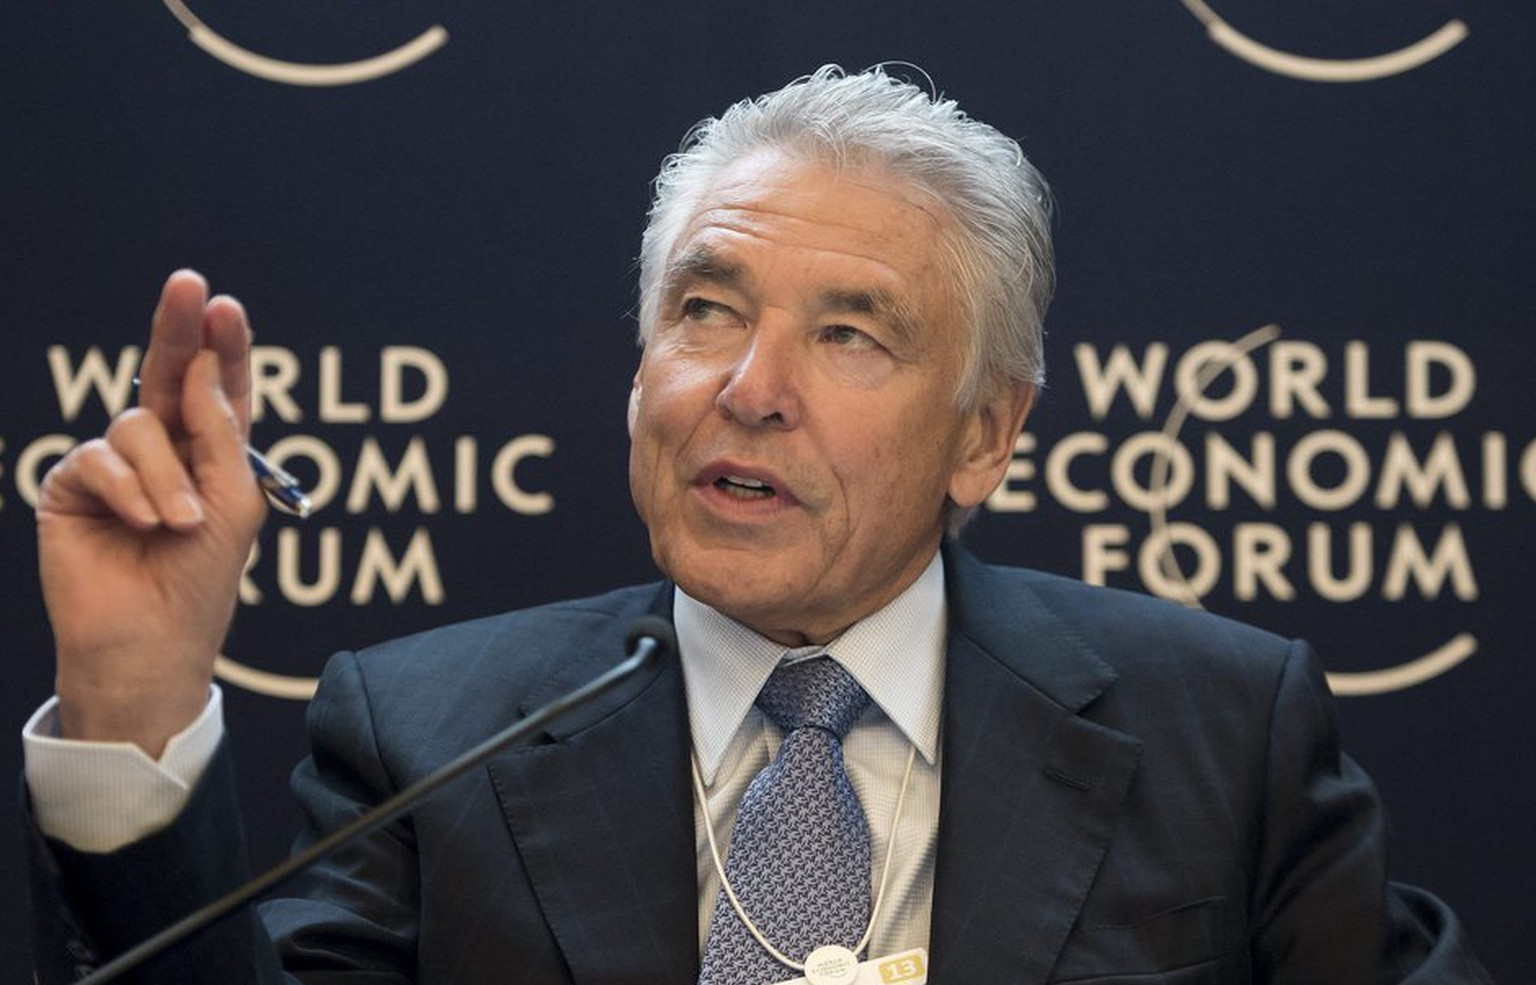 Peter Brabeck-Letmathe, Chairman of the Board, Nestle, speaks during a panel session at the 43rd Annual Meeting of the World Economic Forum, WEF, in Davos, Switzerland, Friday, January 25, 2013. The overarching theme of the meeting, which will take place from 23 to 27 January, is